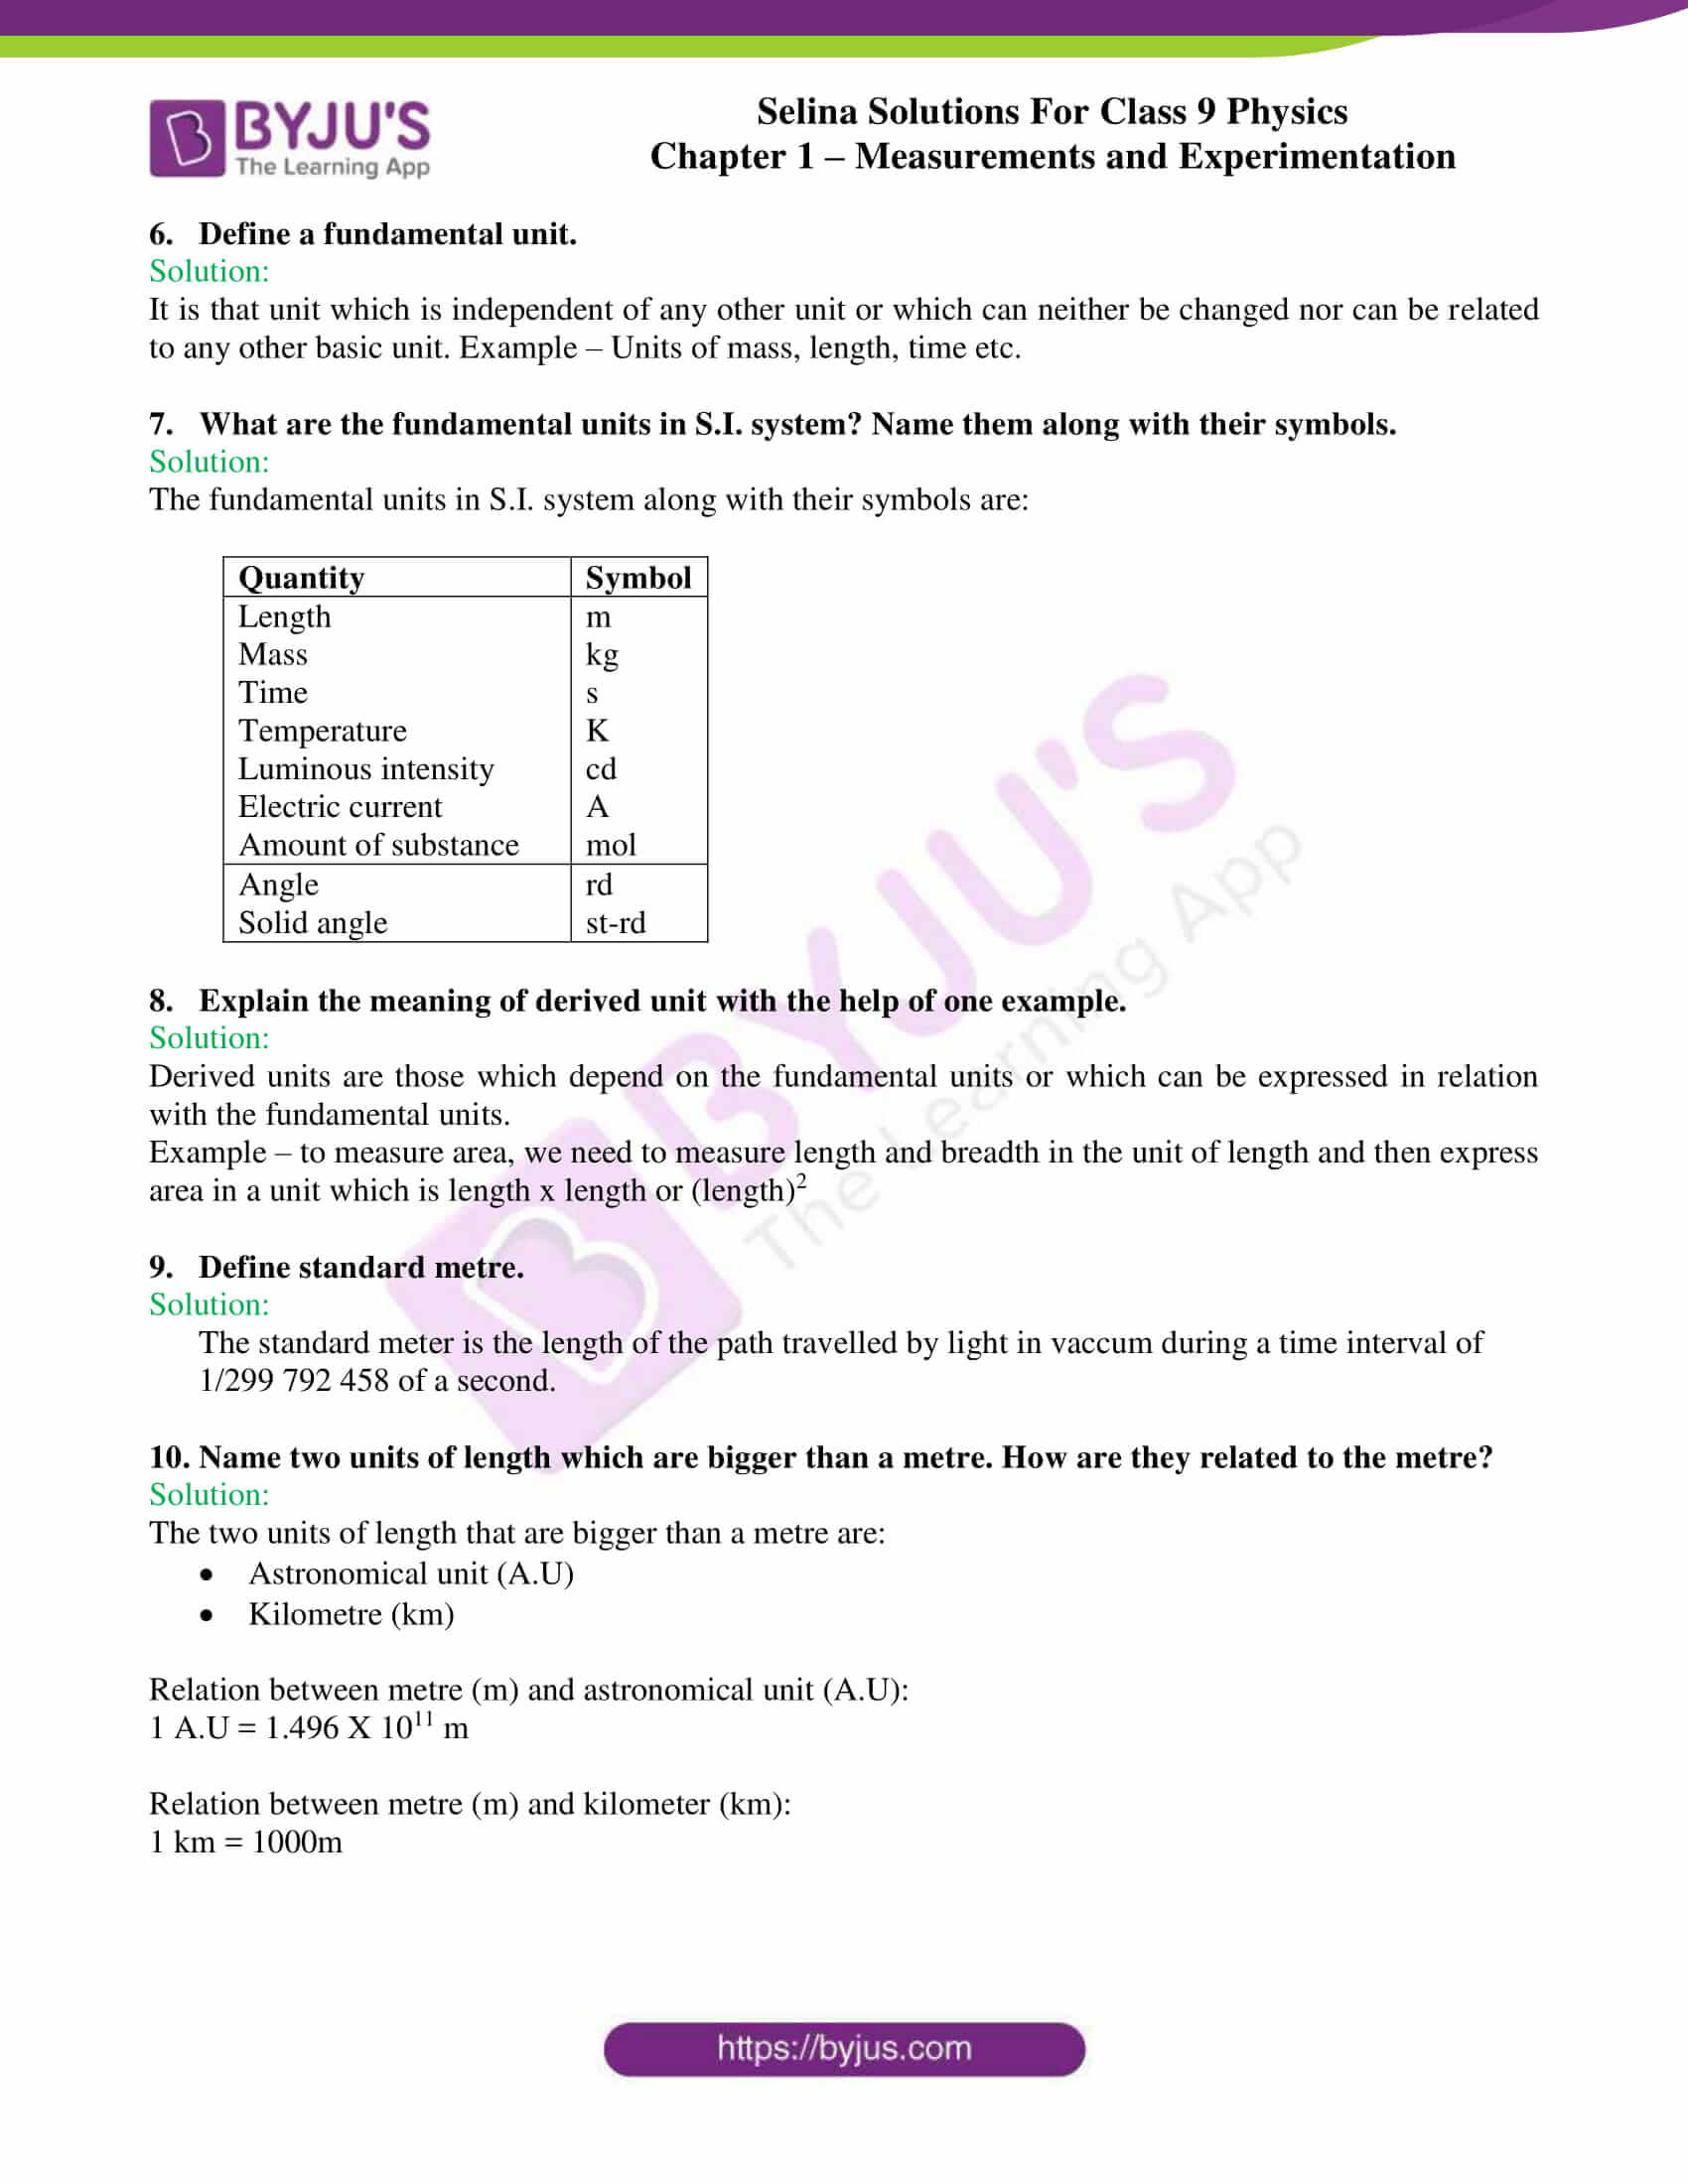 selina solutions class 9 physics chapter 1 Measurements and Experimentation part 02